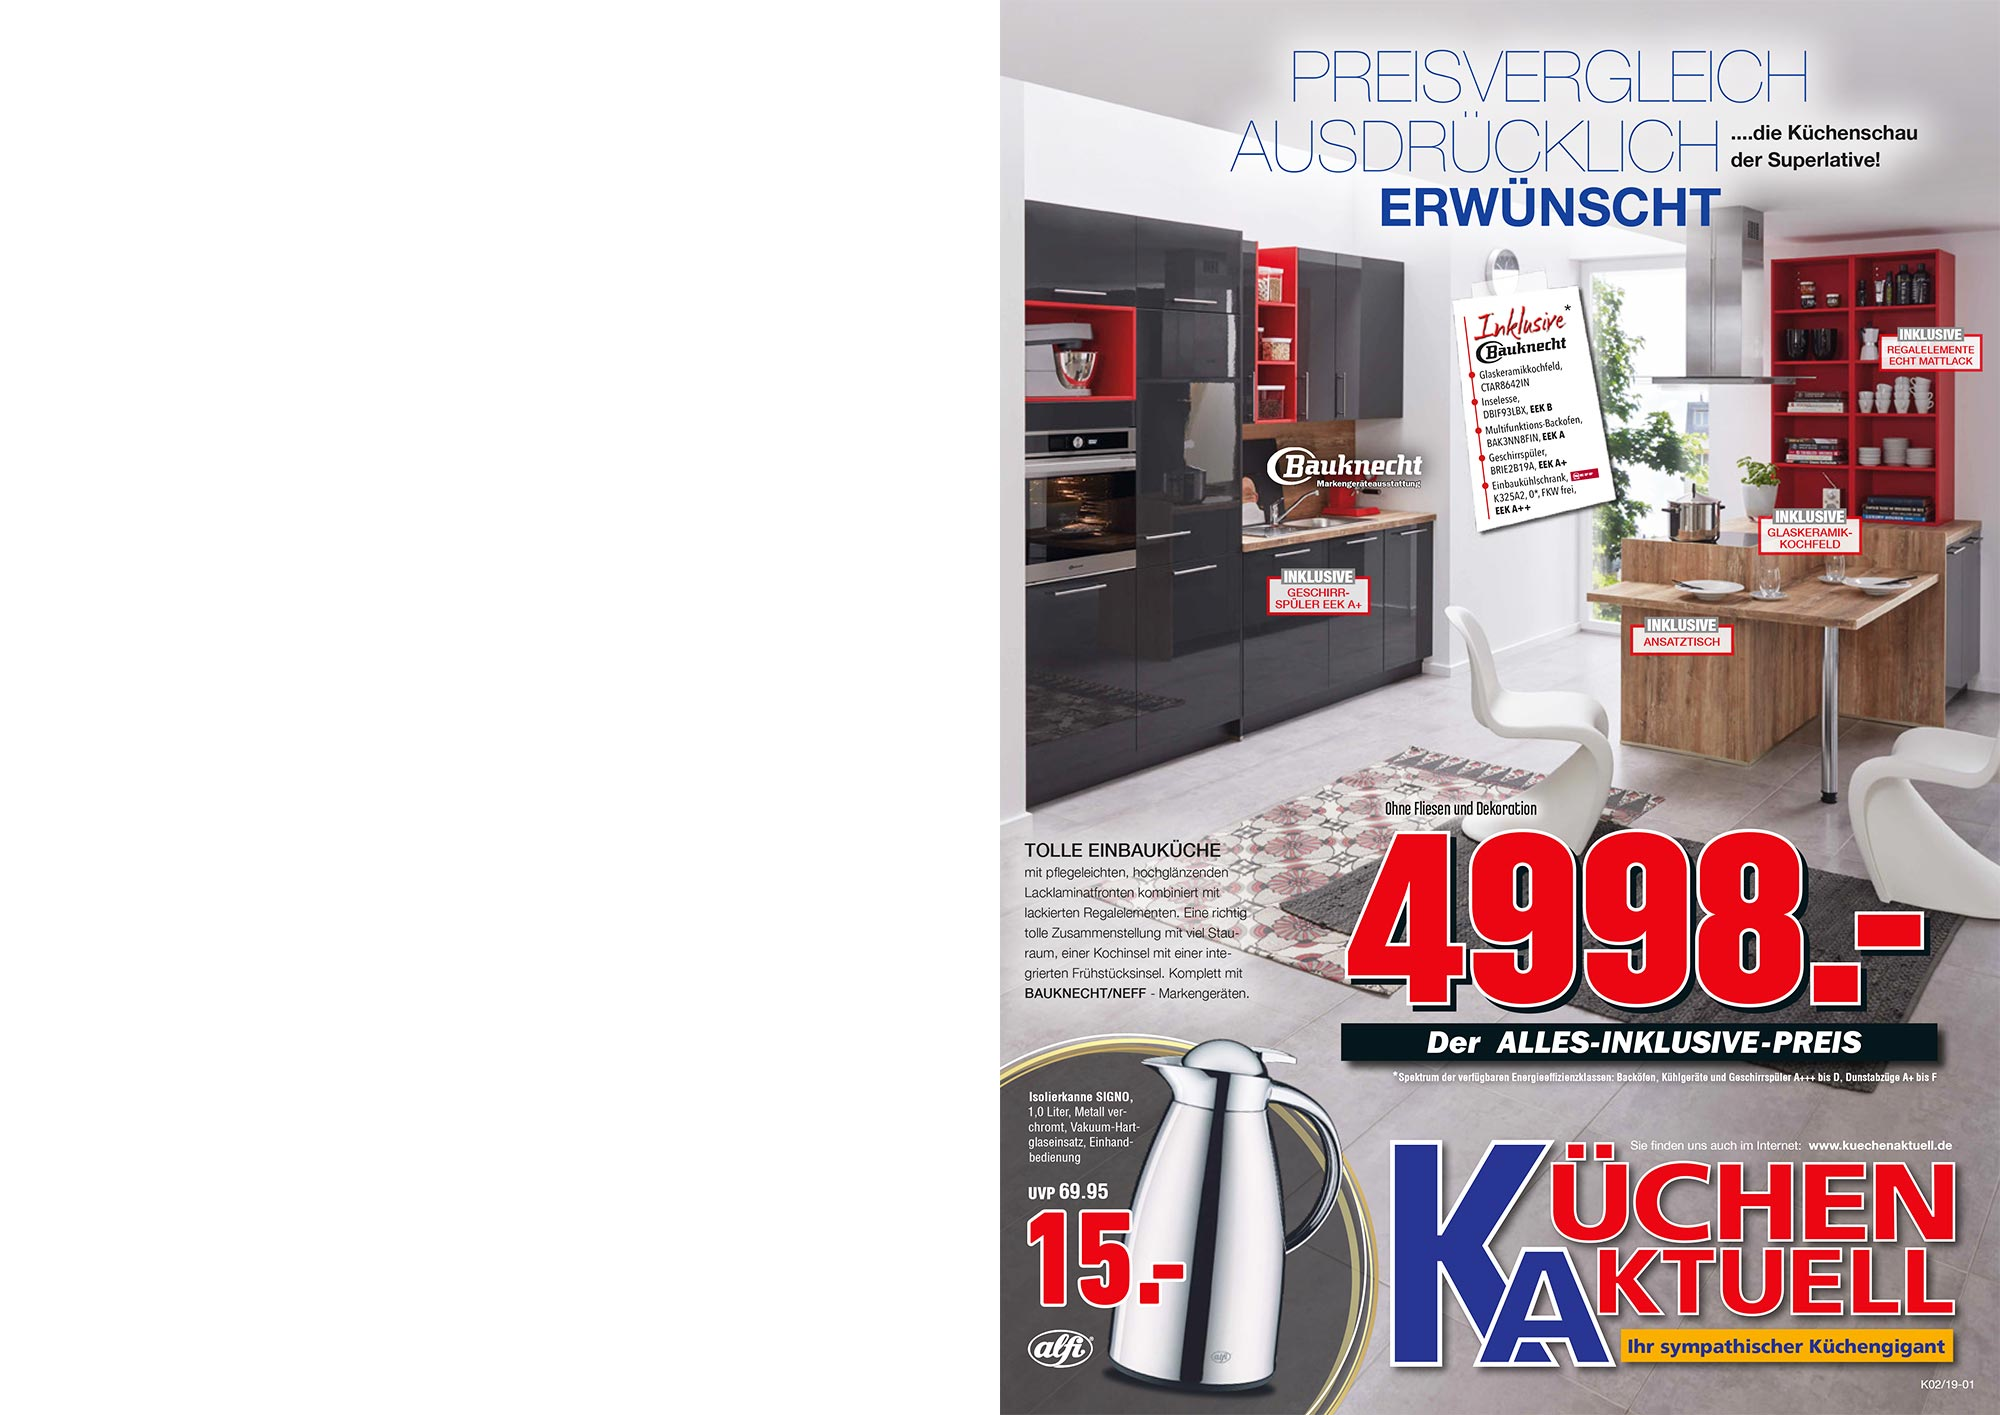 kchen aktuell hannover excellent with kchen aktuell hannover good kchen kchenstudio gmbh with. Black Bedroom Furniture Sets. Home Design Ideas